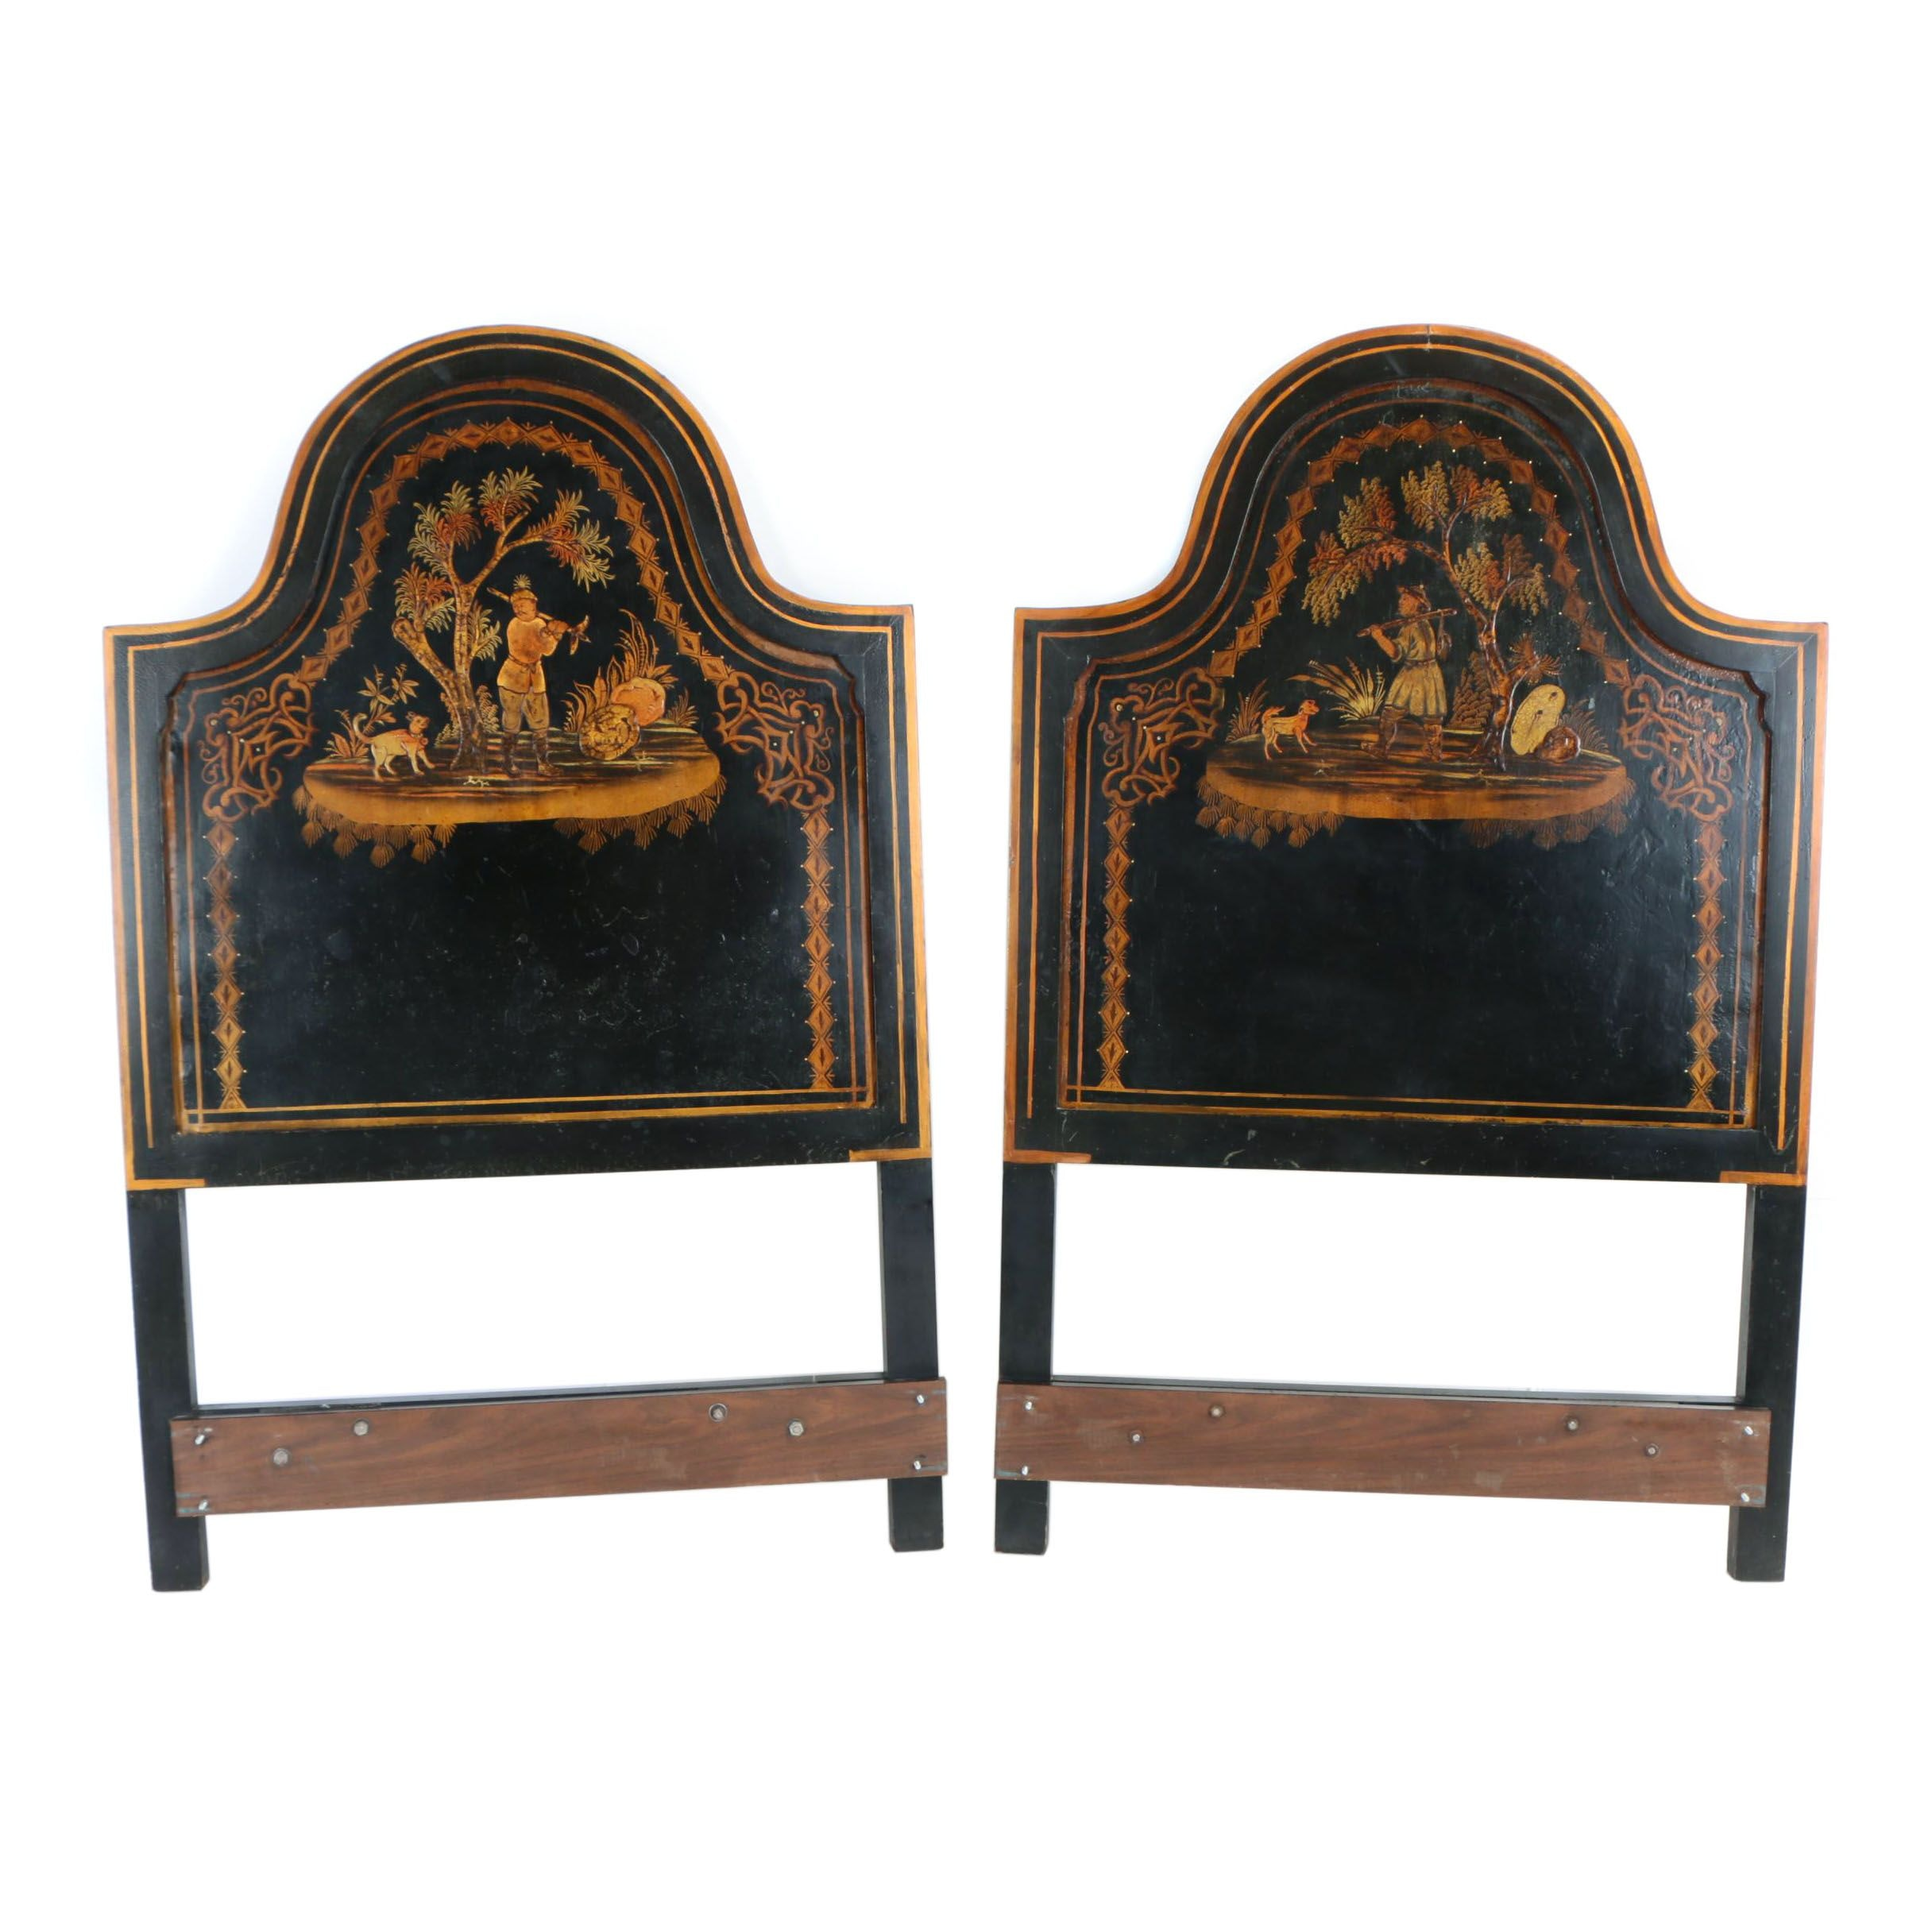 Two Ebonized, Parcel-Gilt, and Chinoiserie-Decorated Twin Size Headboards